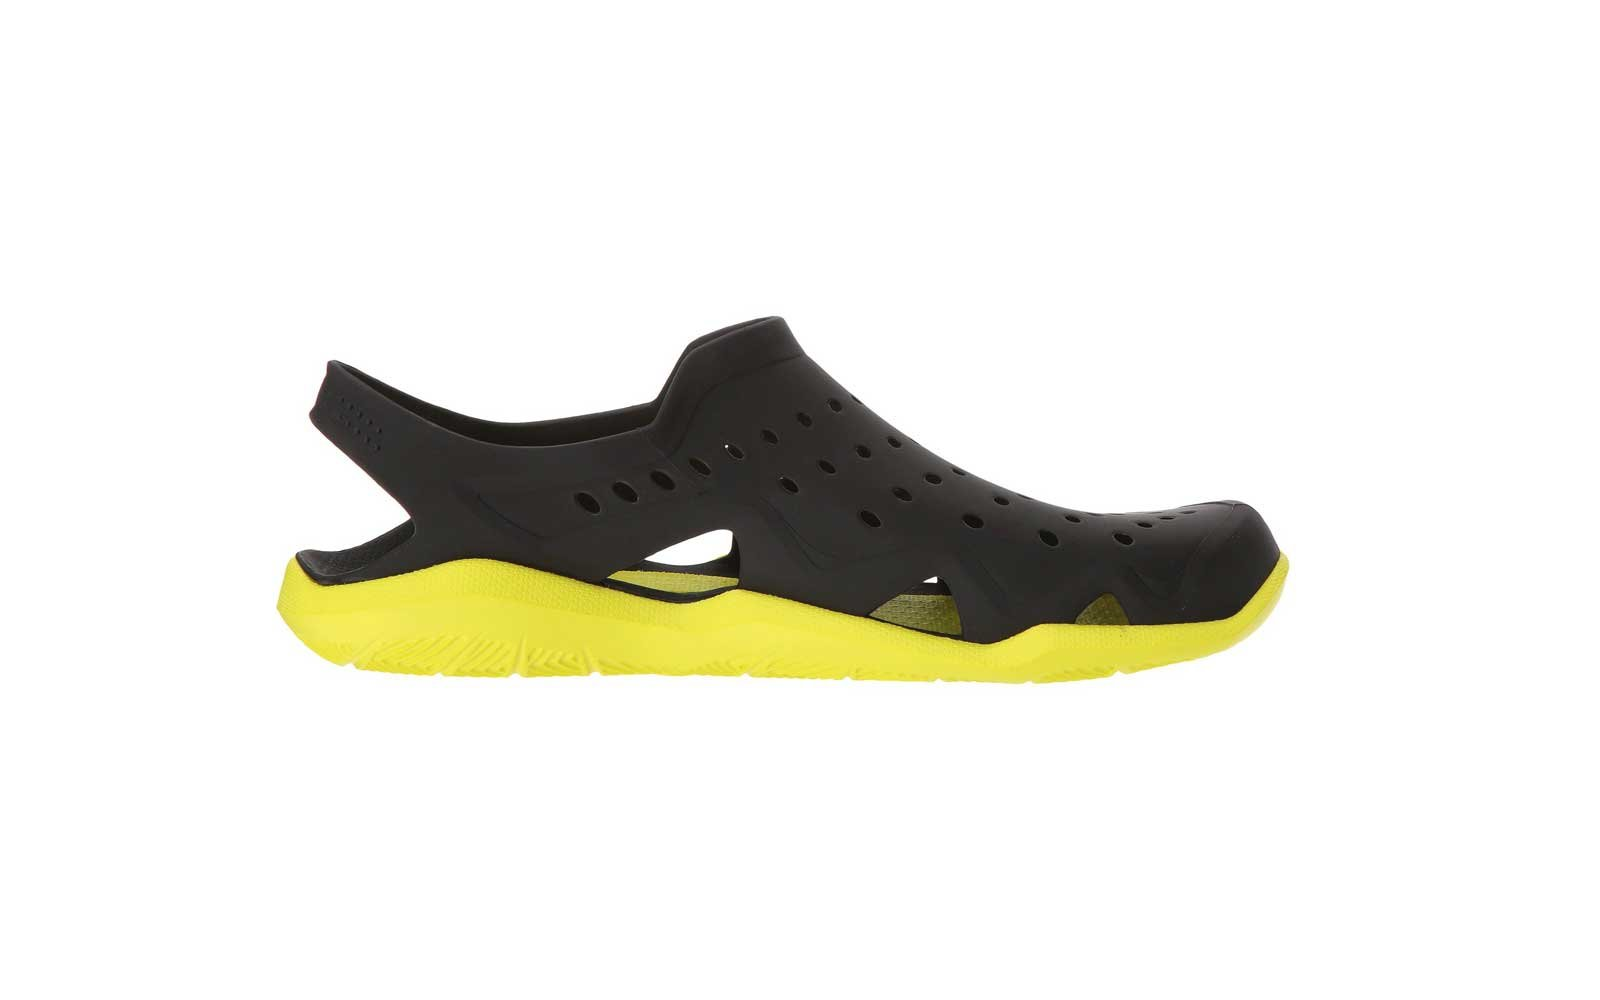 Crocs 'Swiftwater Wave' Water Shoes